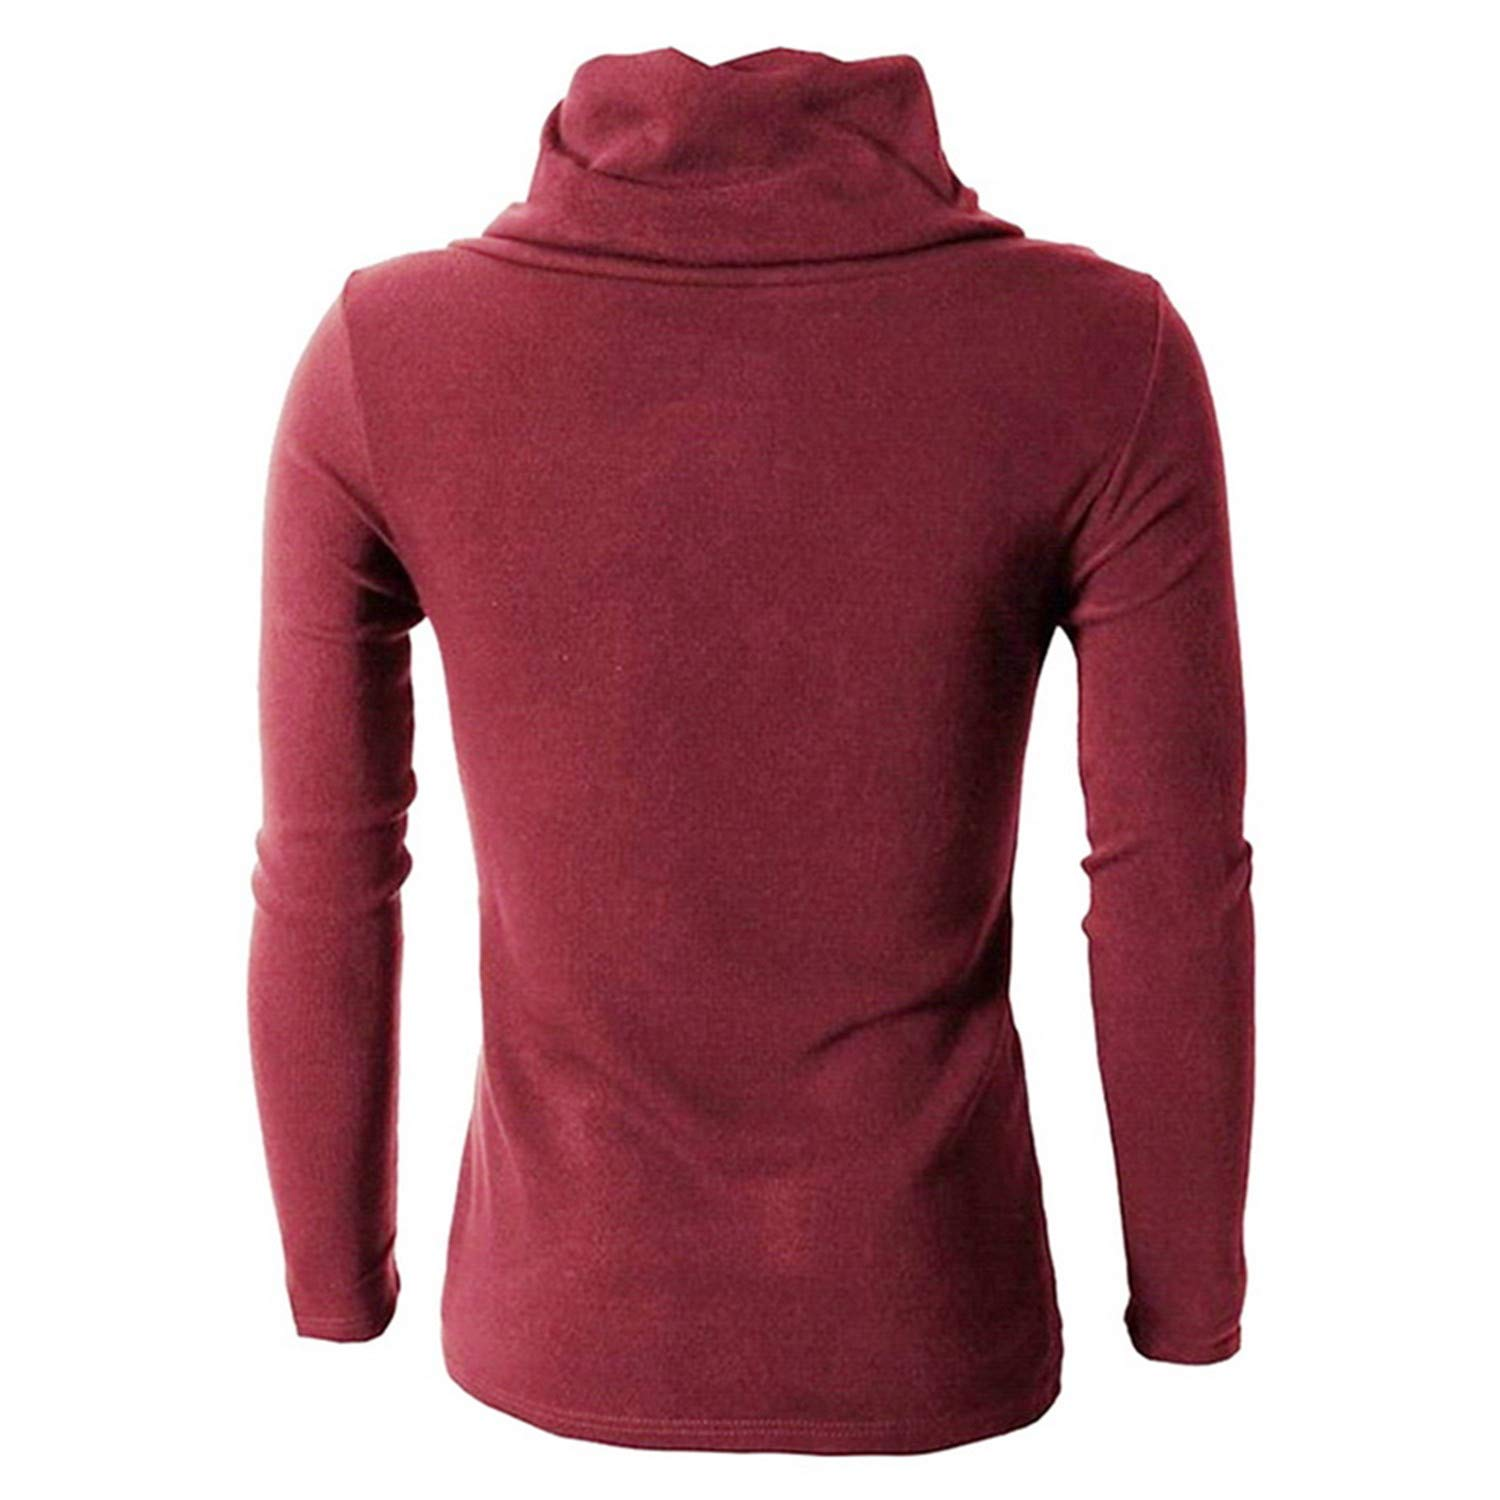 Cyose Fashion High Collar Sweaters Men Casual Slim Mixed Colors Sweaters for Mens